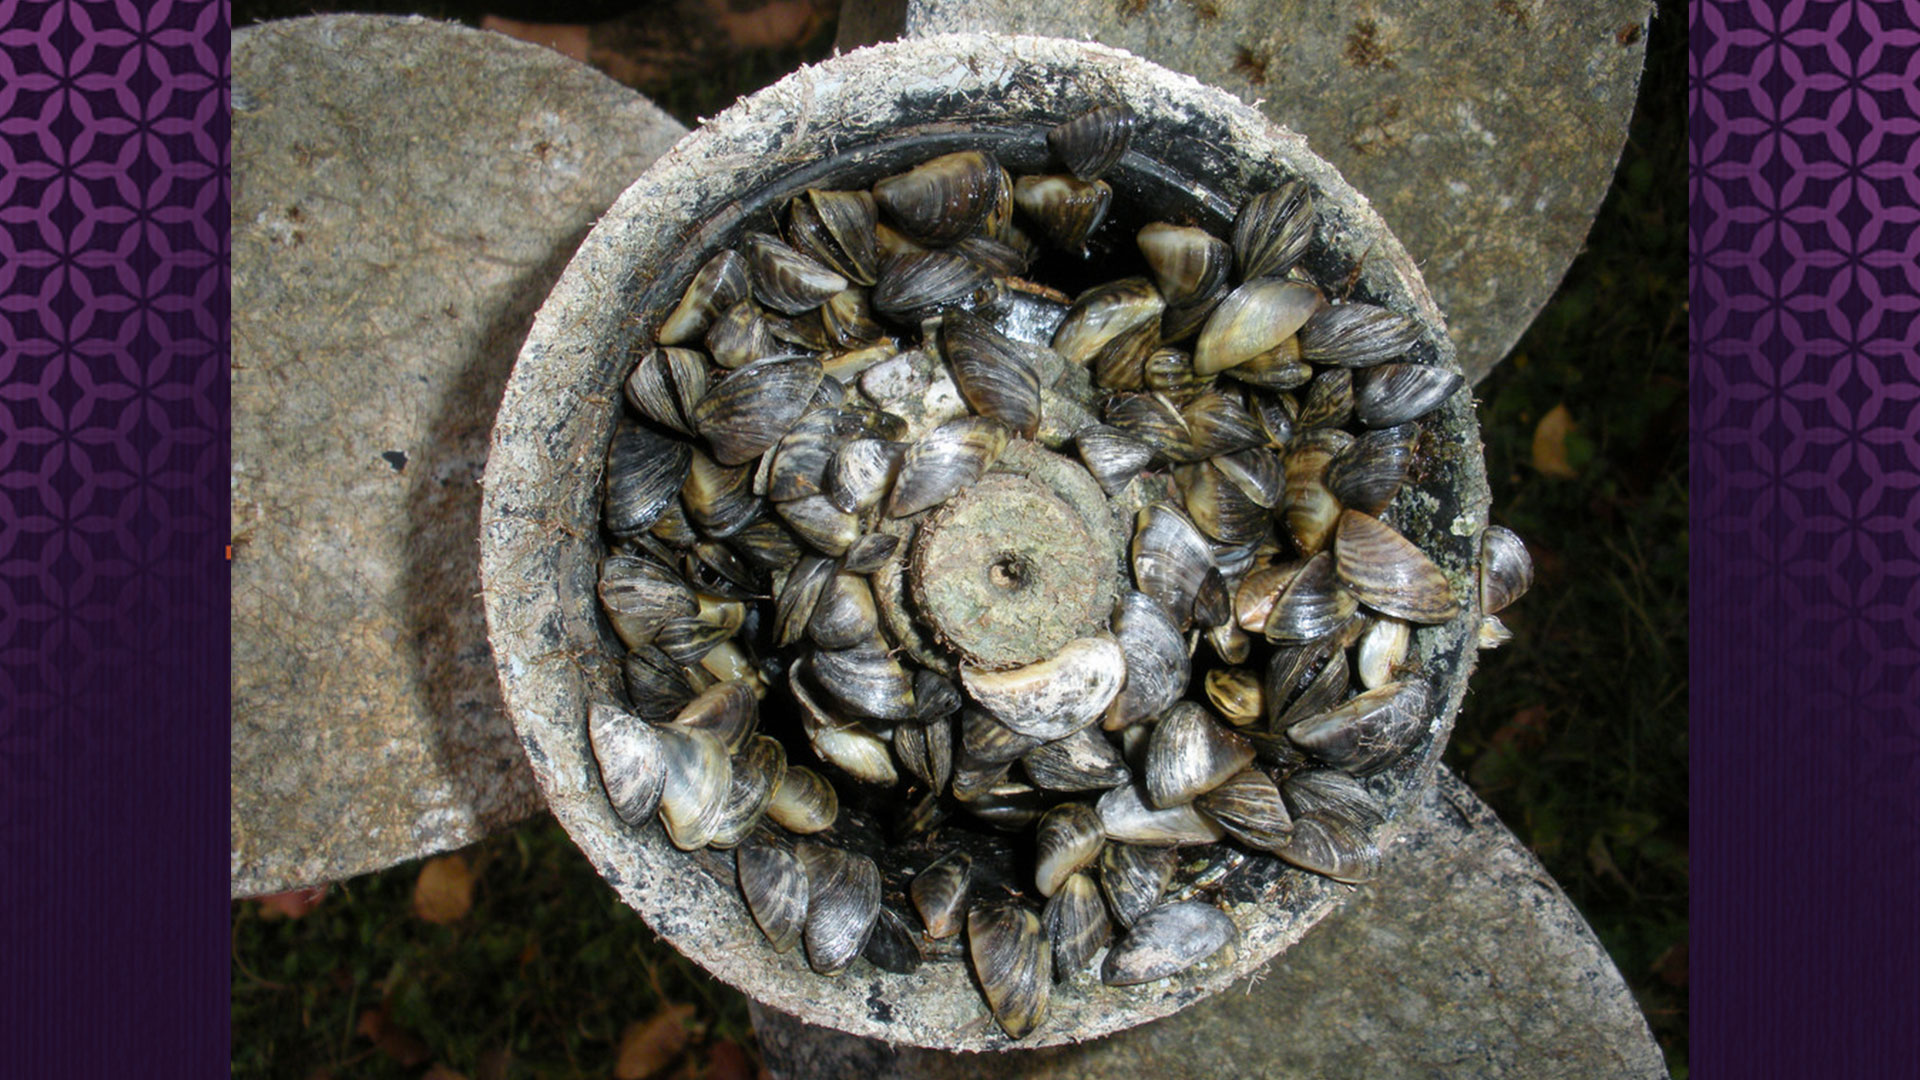 studio-512-austin-watershed-protection-zebra-mussels-3_534959